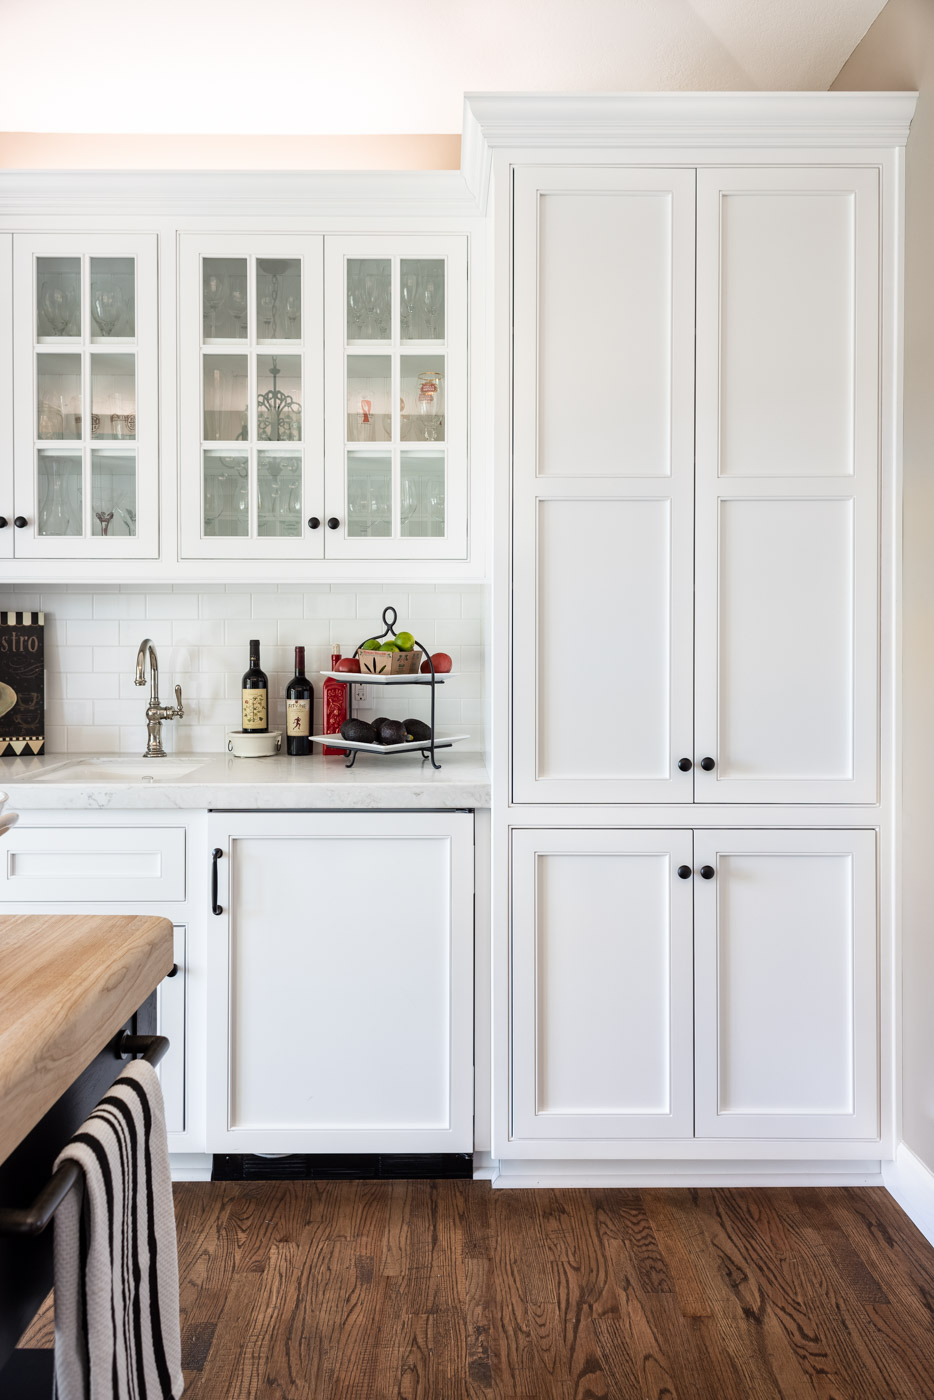 Transitional Country Cottage style kitchen with white recessed panel painted cabinets and refrigerator door panel